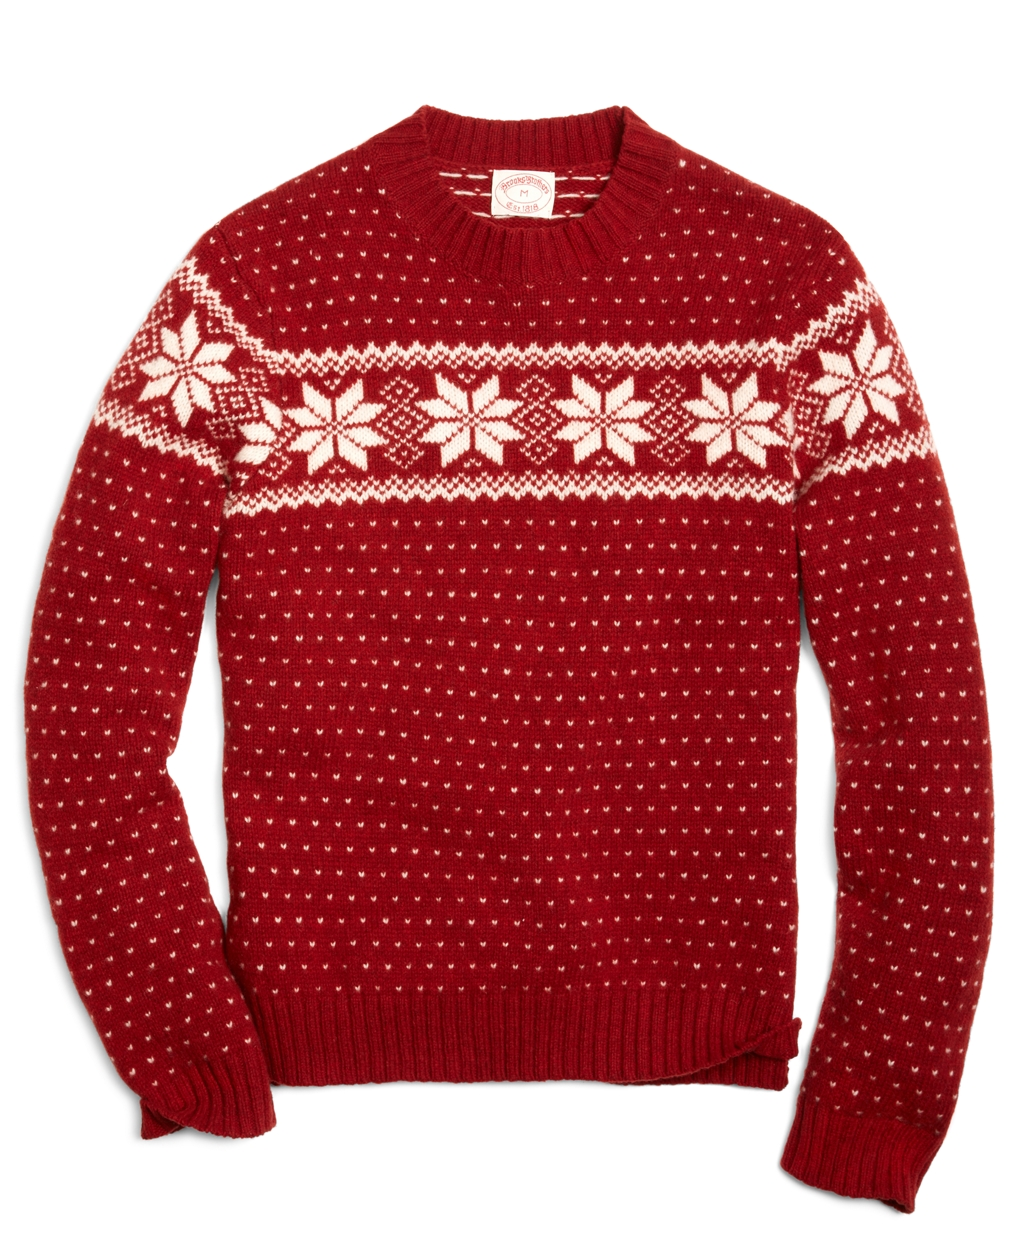 Lyst - Brooks Brothers Snowflake Fair Isle Crewneck Sweater in Red ... 91209d67d